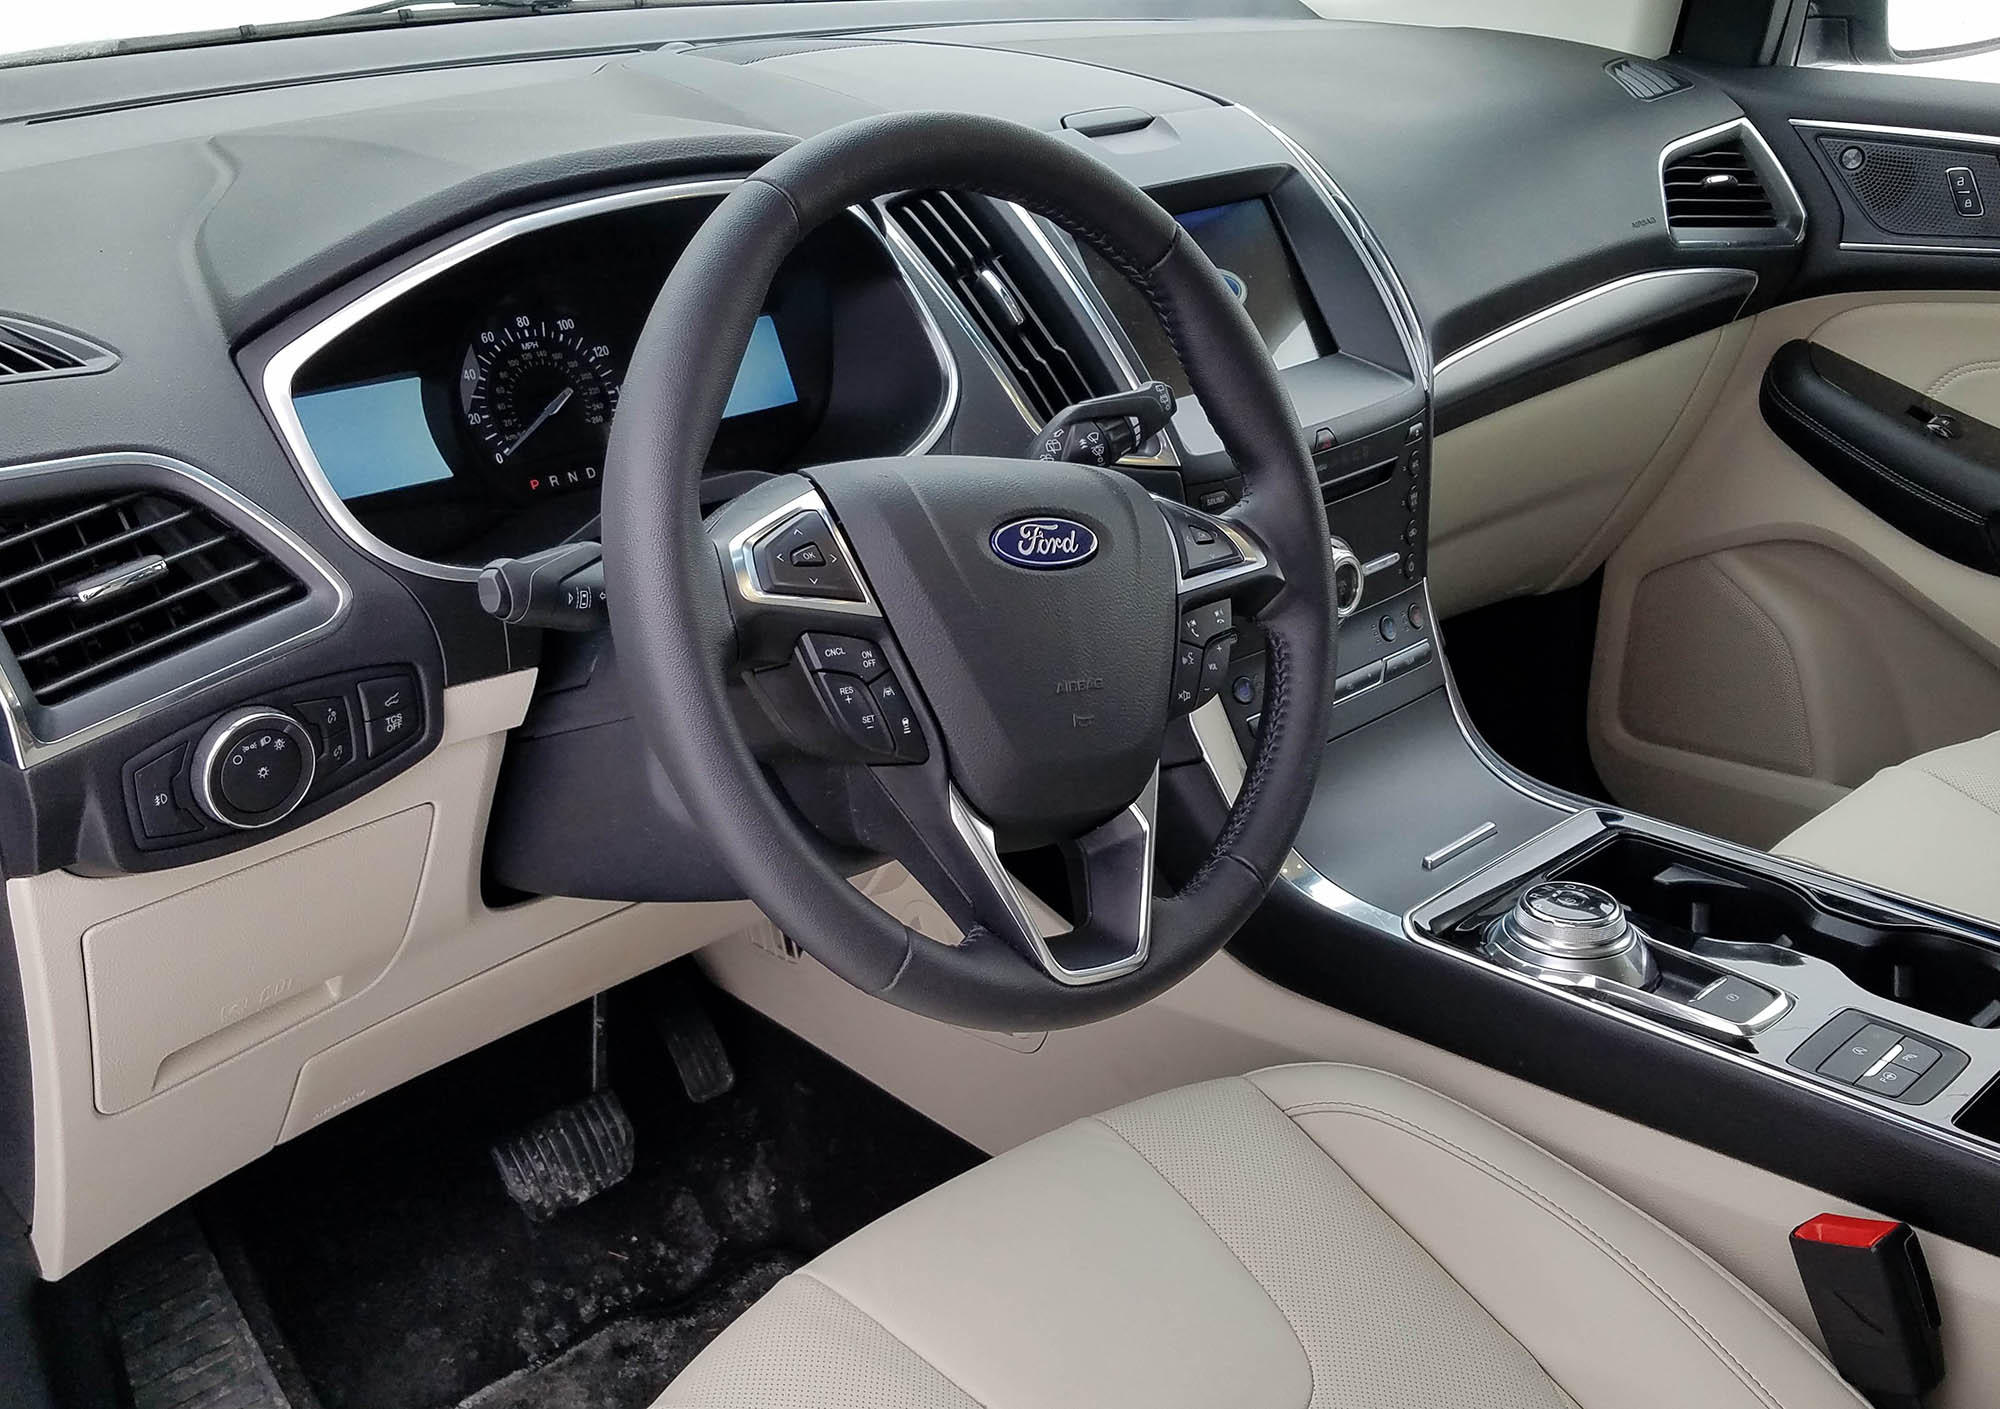 2019 Ford Edge Titanium Awd Review Turbo New Transmission Provide Zip Wuwm